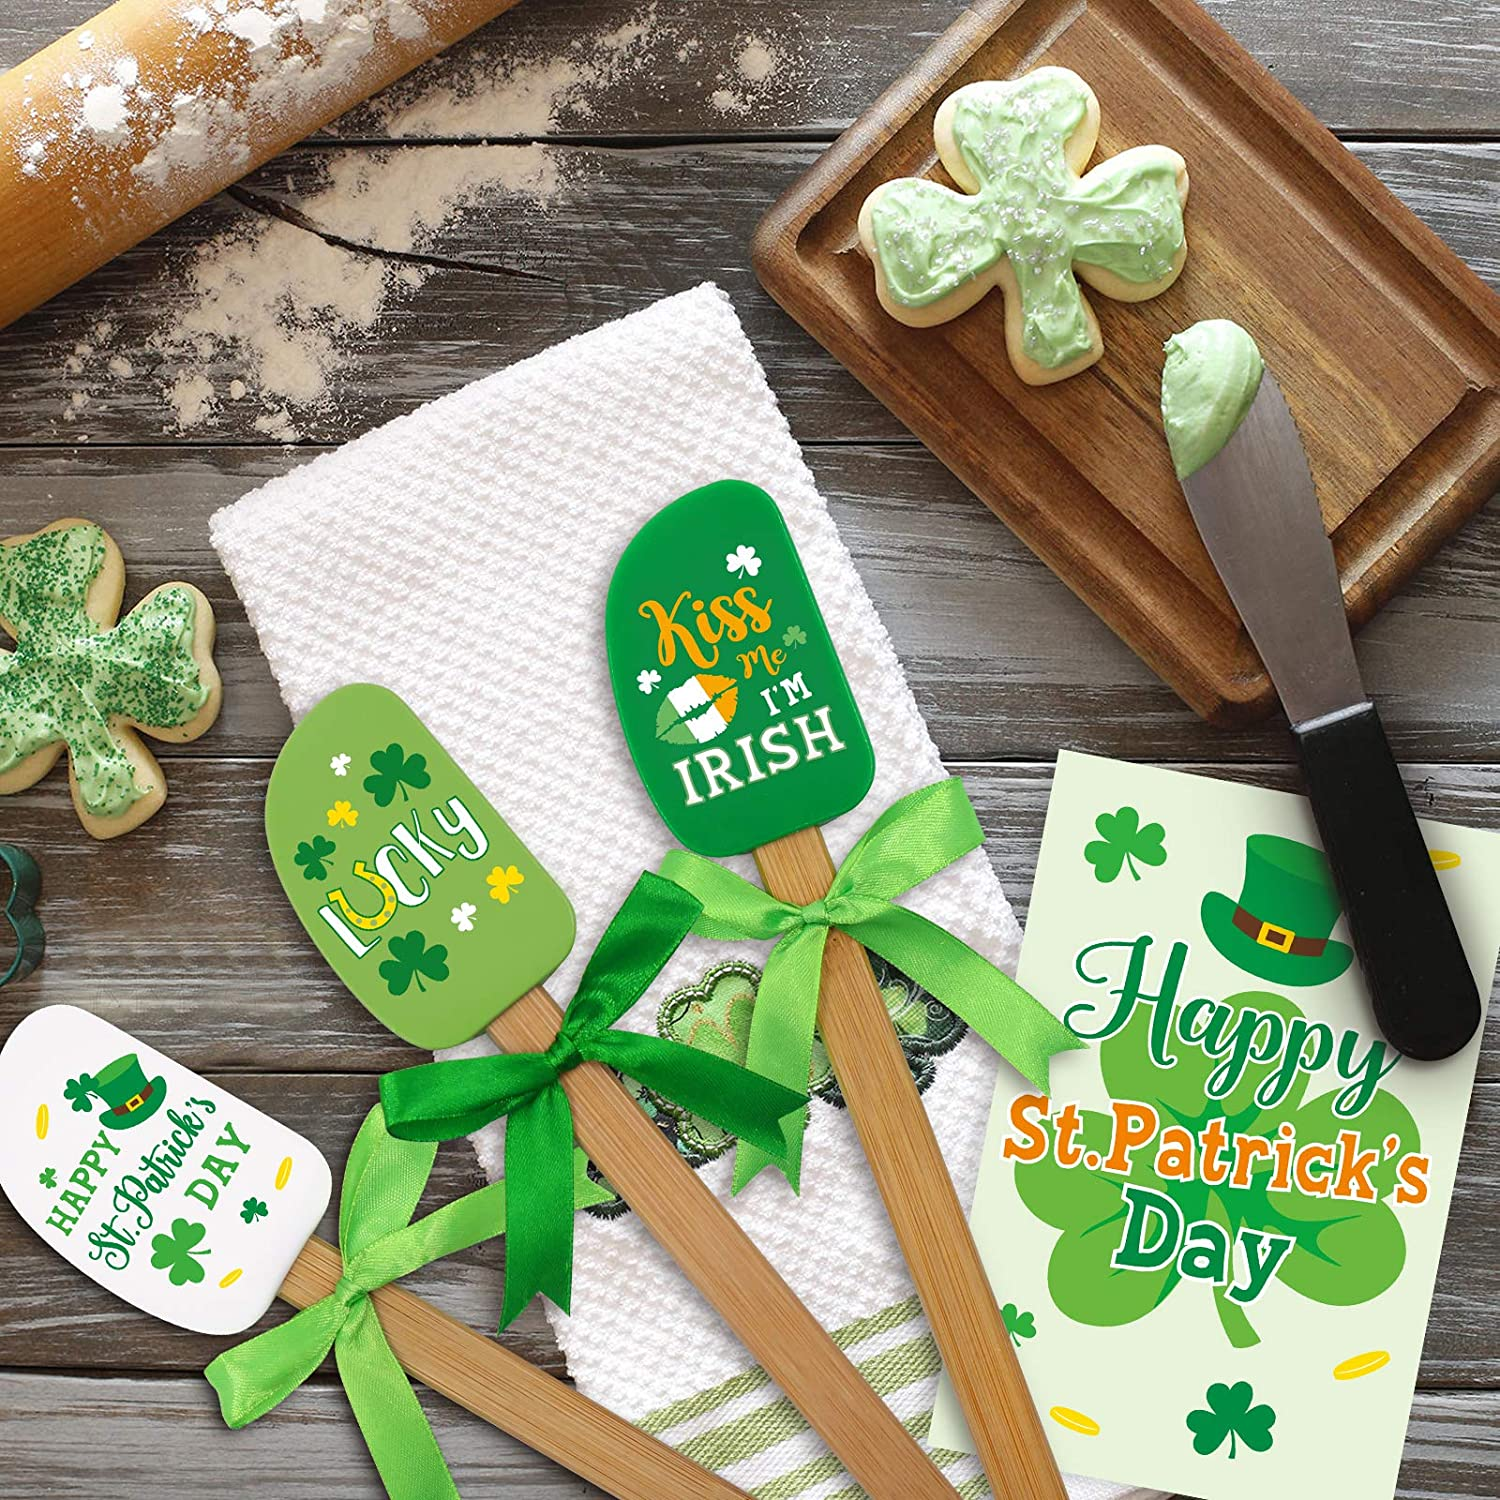 3 Piece St. Patrick's Day Silicone Spatula Set 450°F Heat Resistant Kitchen Spatulas Cooking Baking Mixing Supplies with Saint Paddy's Day Greeting Card St. Patrick's Day Gift